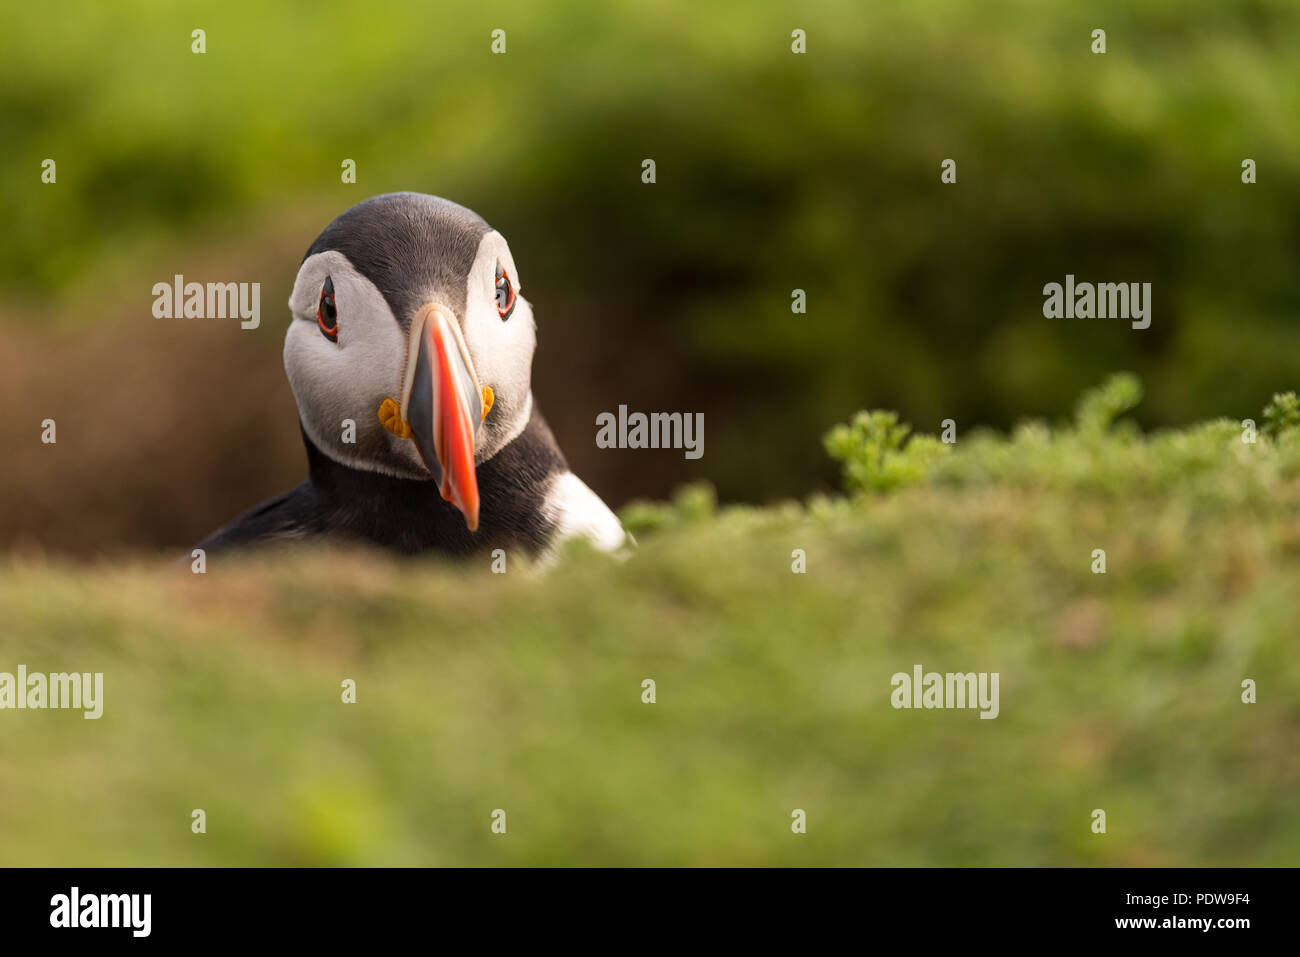 A puffin with its head out of its burrow - Stock Image